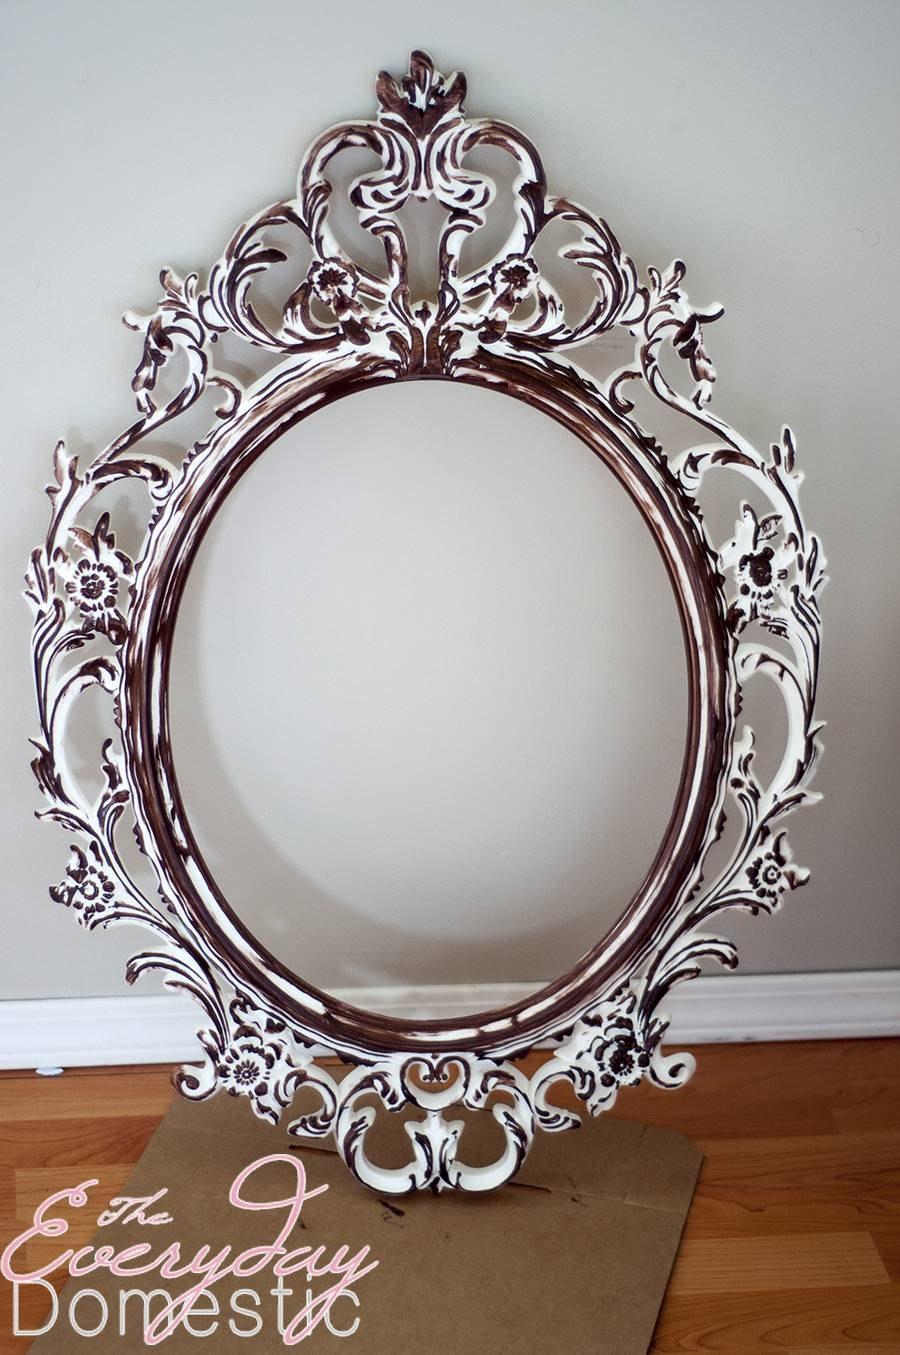 Accessories: Fair Picture Of Vintage Chic Ornate Silver Metallic Pertaining To Silver Oval Wall Mirrors (View 2 of 25)